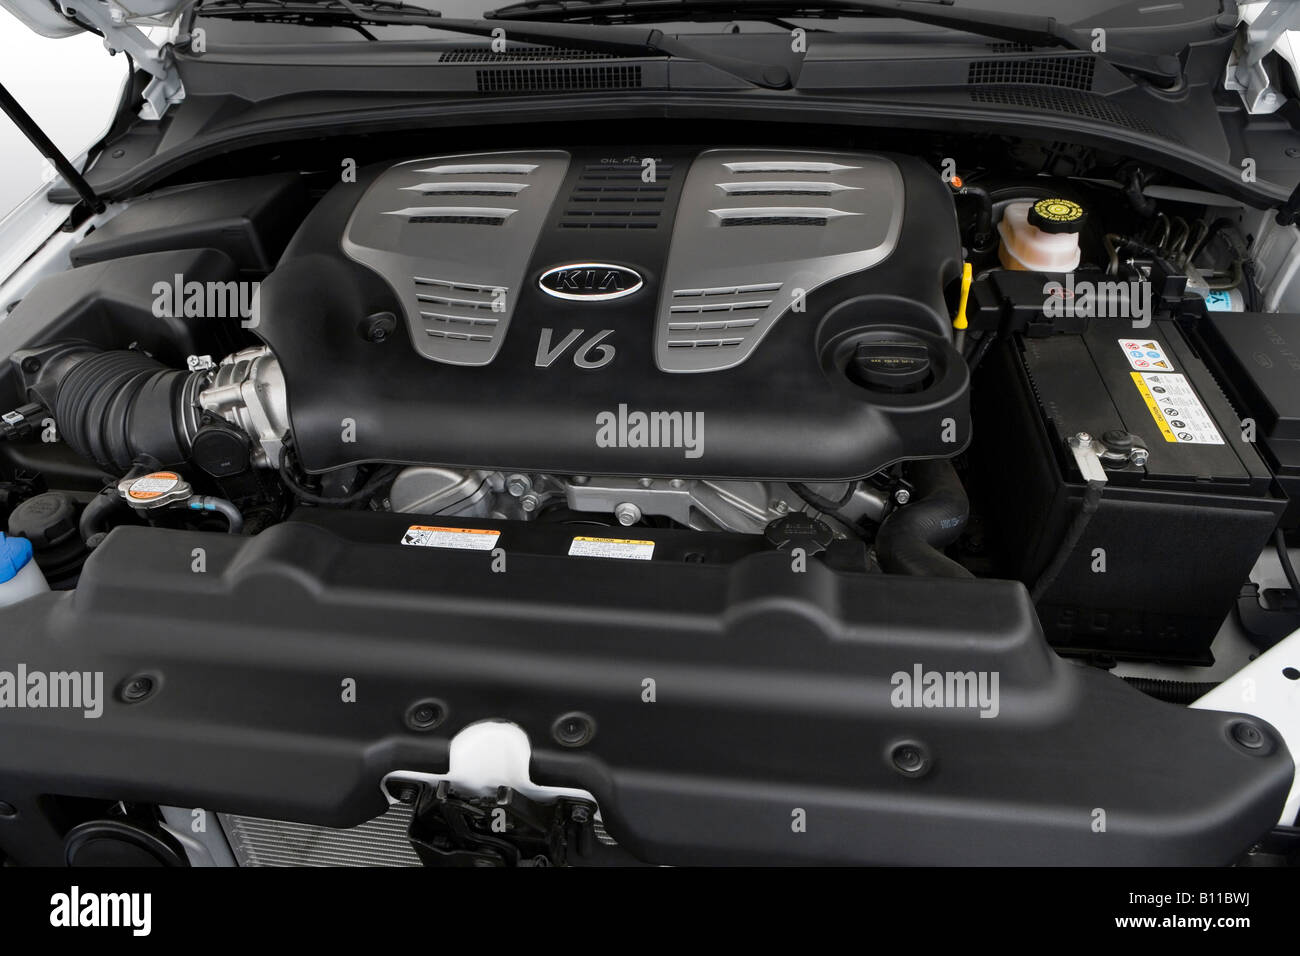 2008       Kia       Sorento    EX in White     Engine    Stock Photo